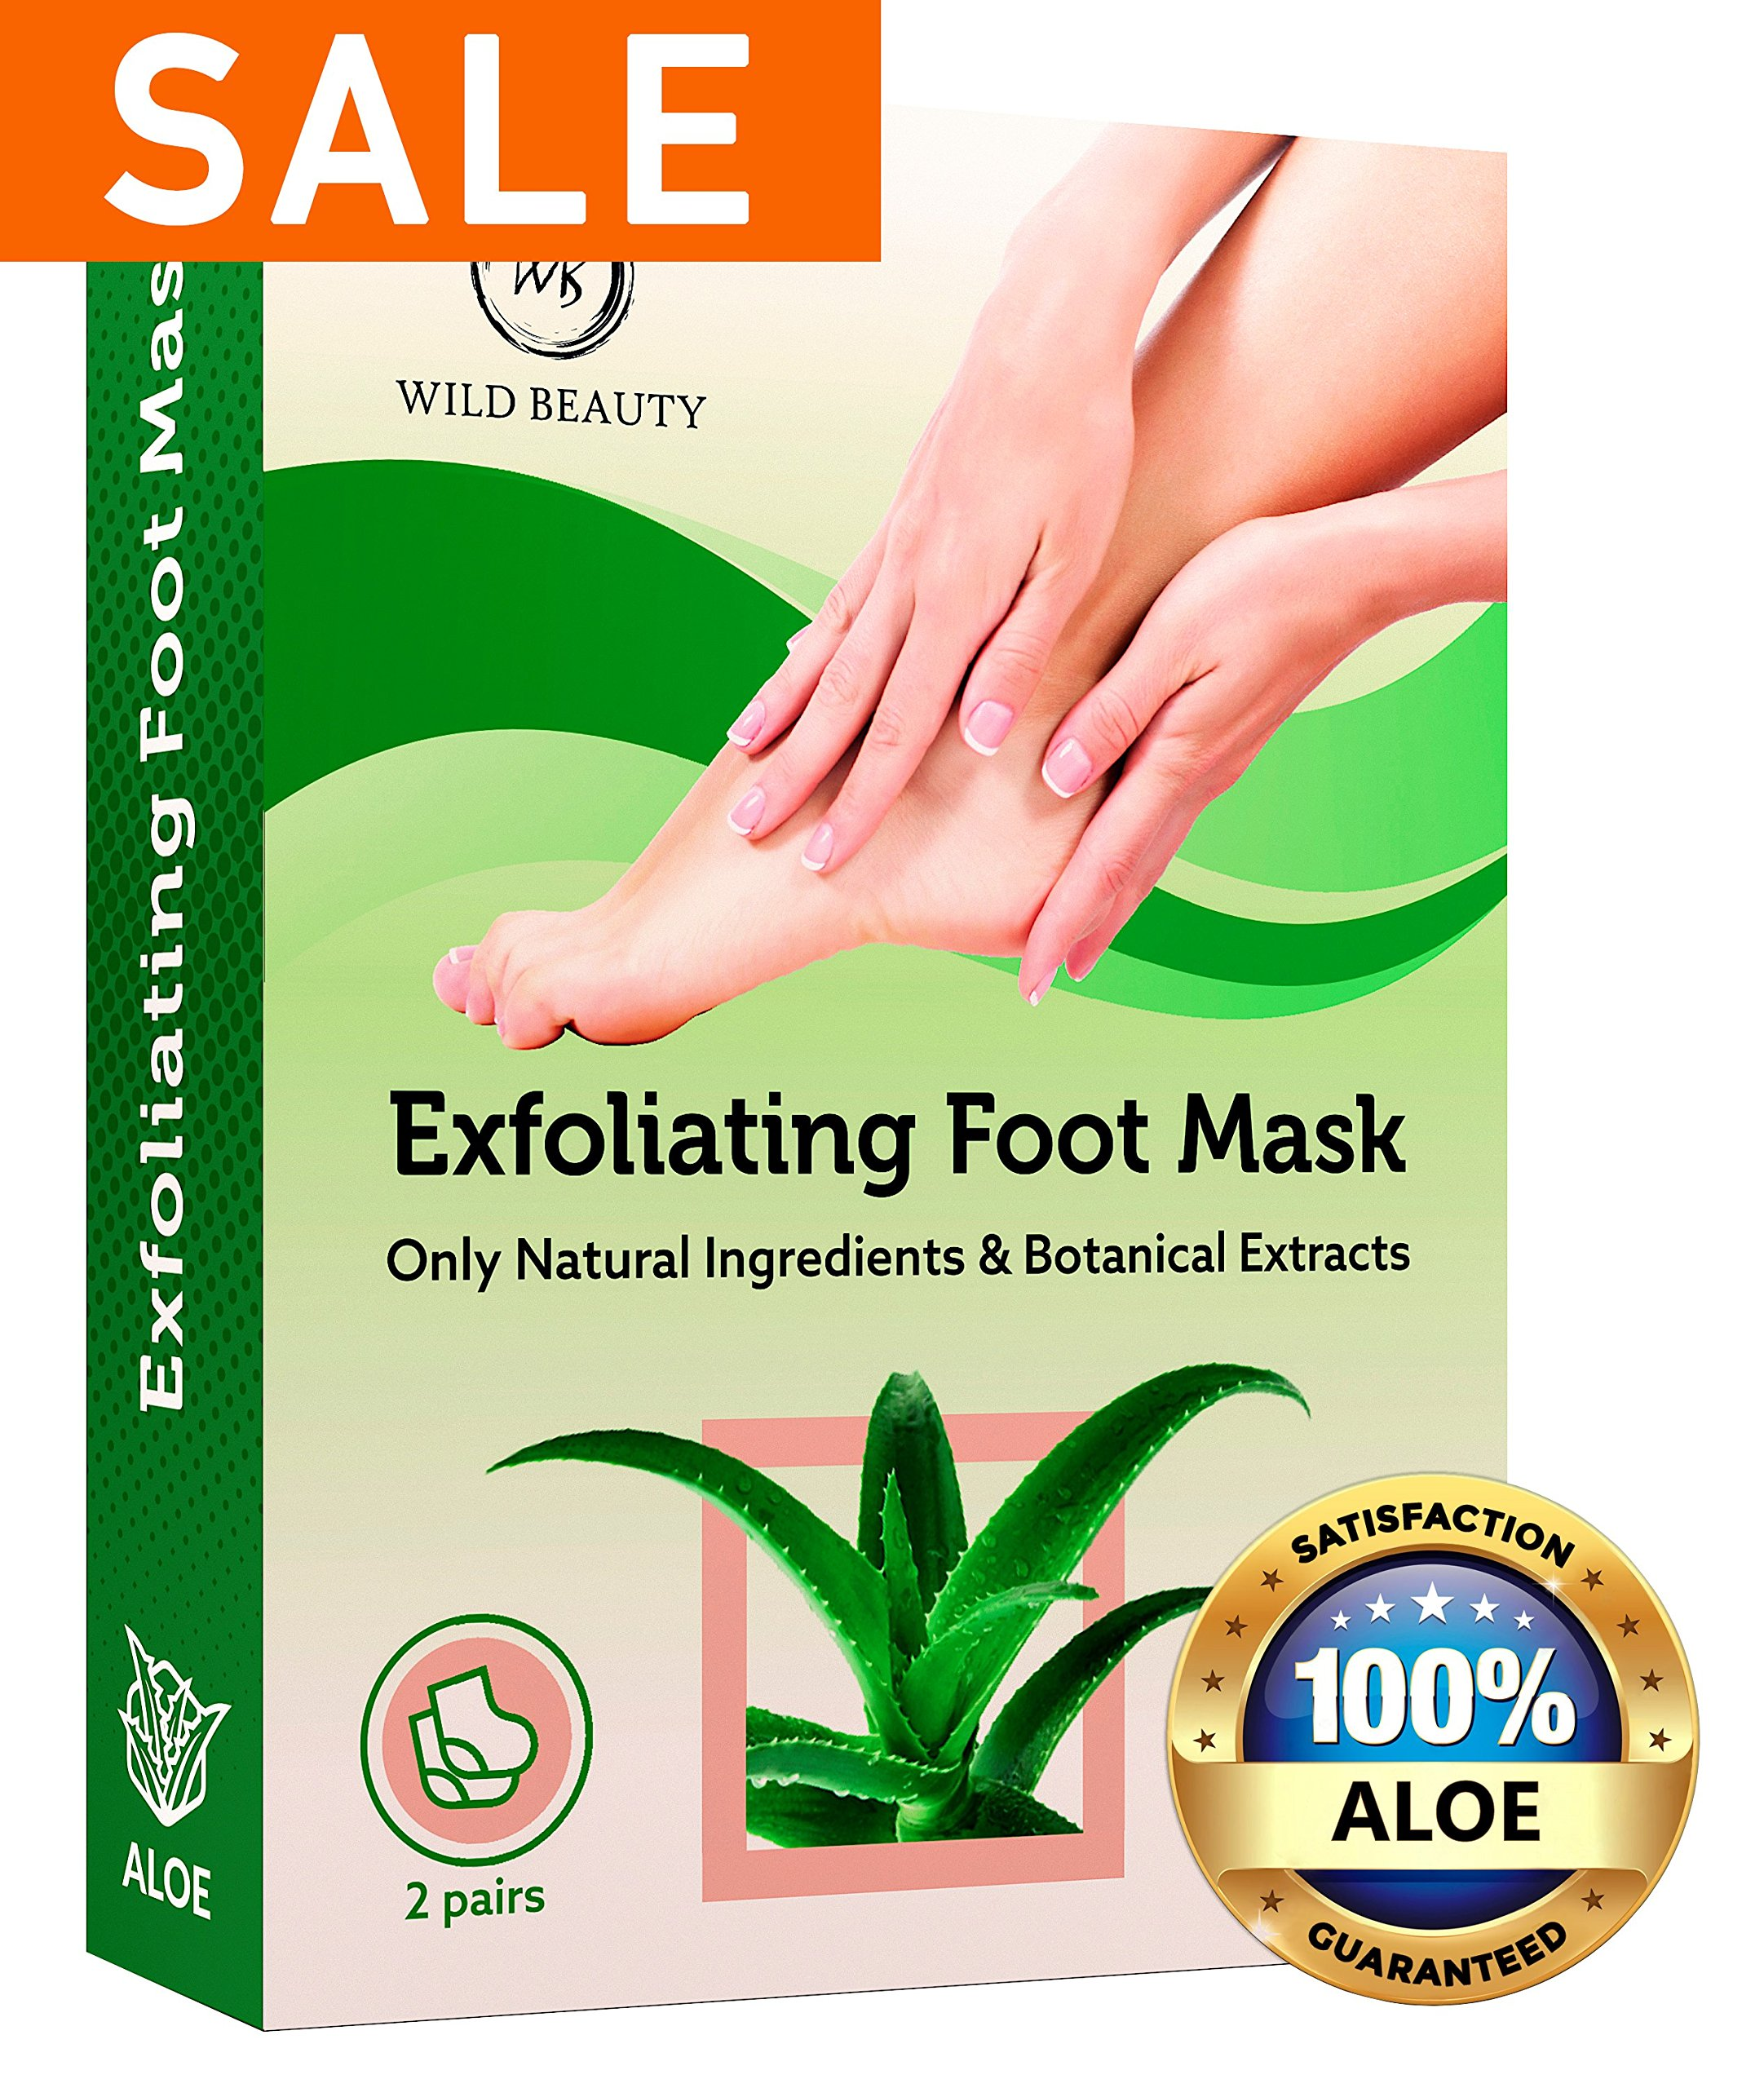 NEW 2018 Exfoliating Foot Peel Mask For Soft Smooth Touch Baby Feet - 2 Pairs Peeling Away Calluses Dead Skin Remover for Feet - Repair Rough Heels - Aloe Baby Foot Peel